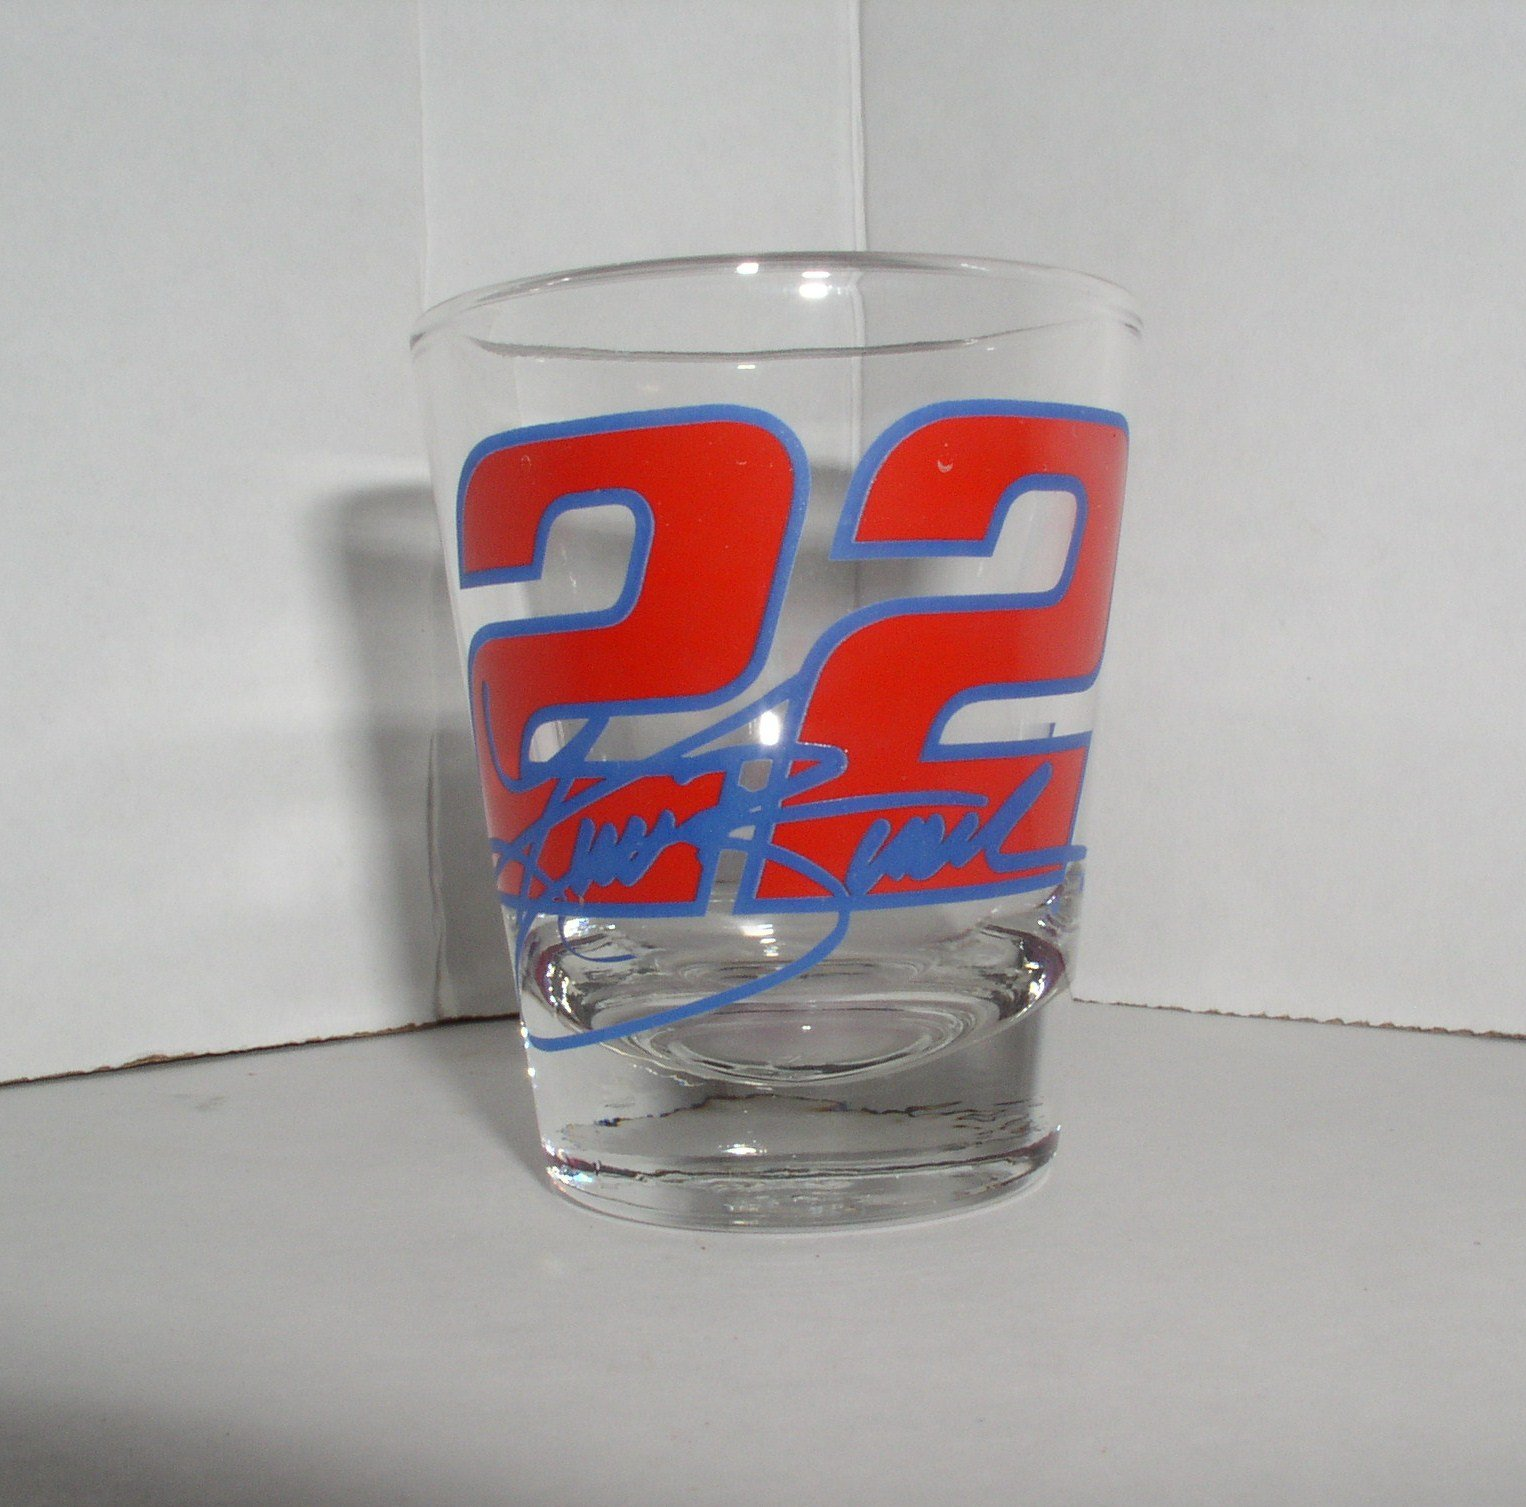 NASCAR #22 ONE OUNCE RED/BLUE